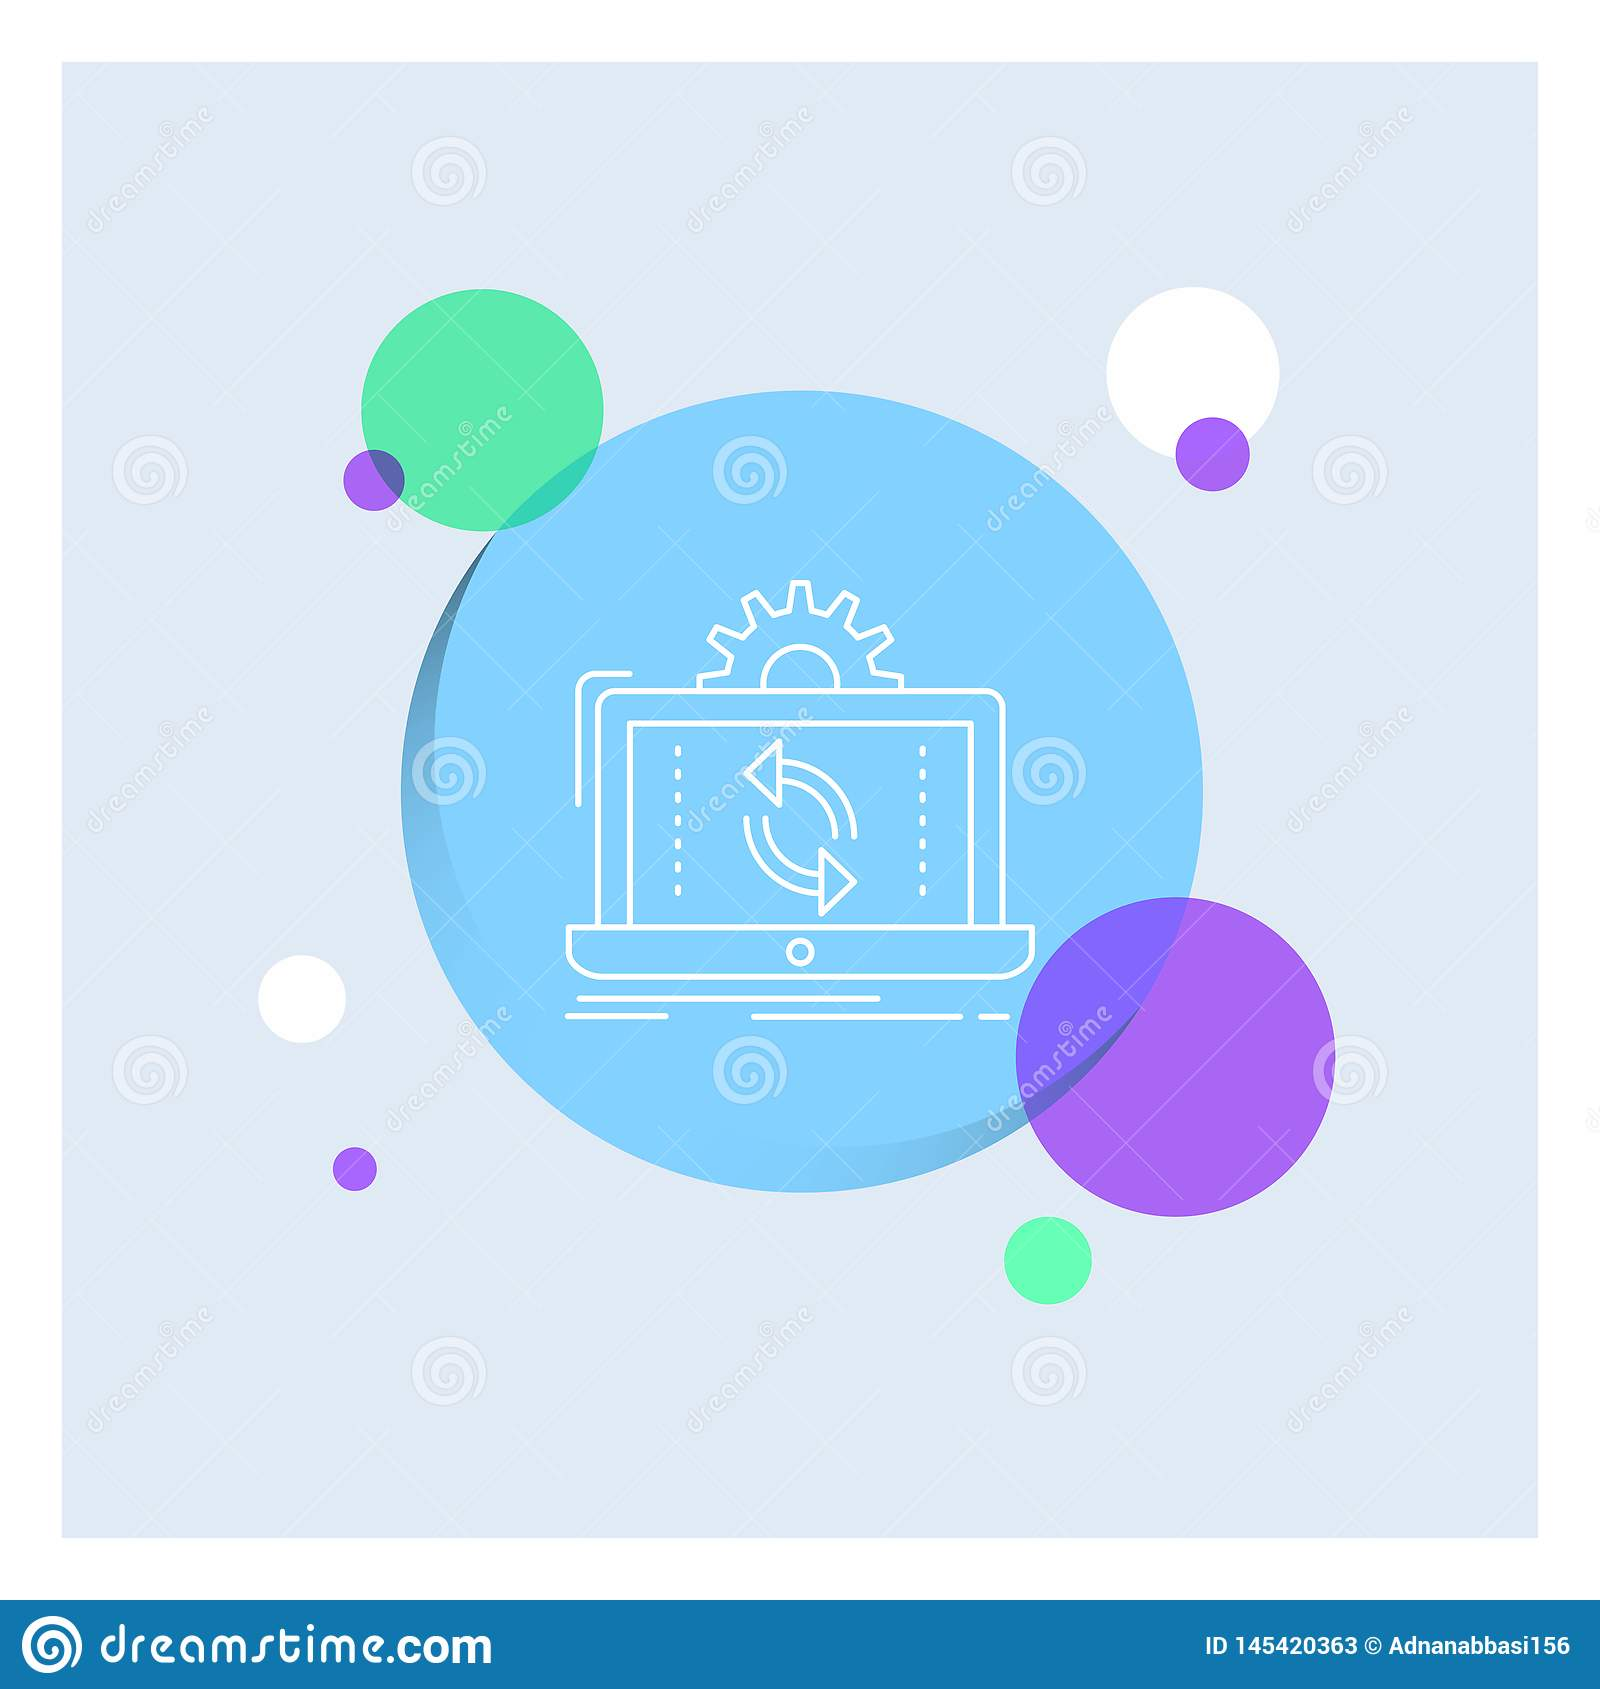 data, processing, Analysis, reporting, sync White Line Icon colorful Circle Background